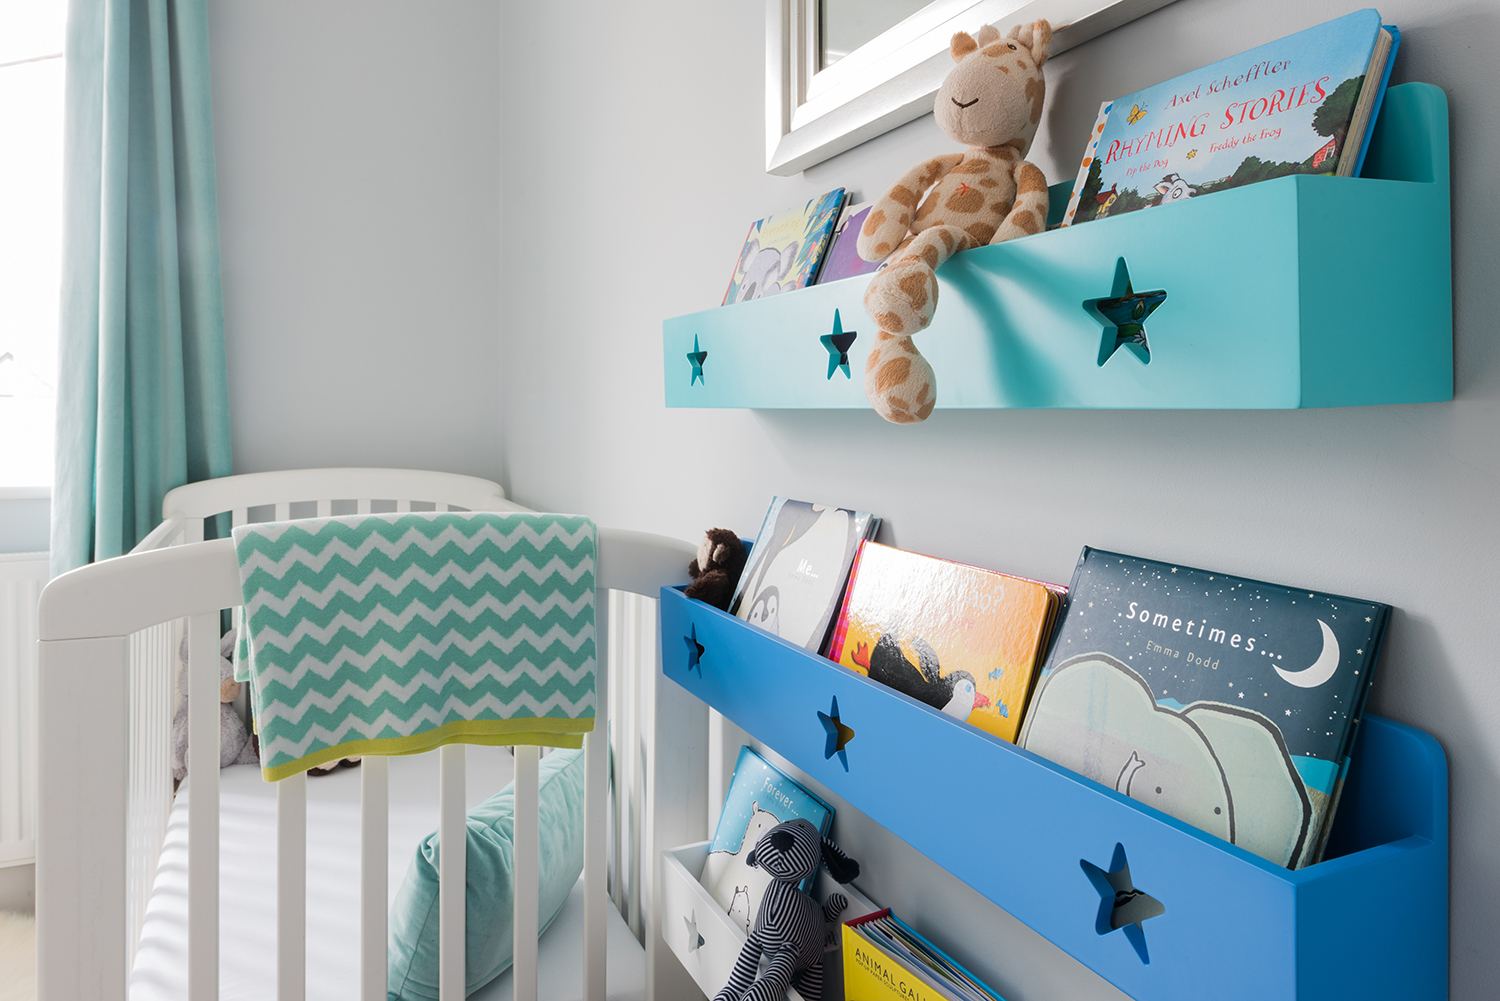 View of bookshelf and cot in peacock coloured unisex nursery